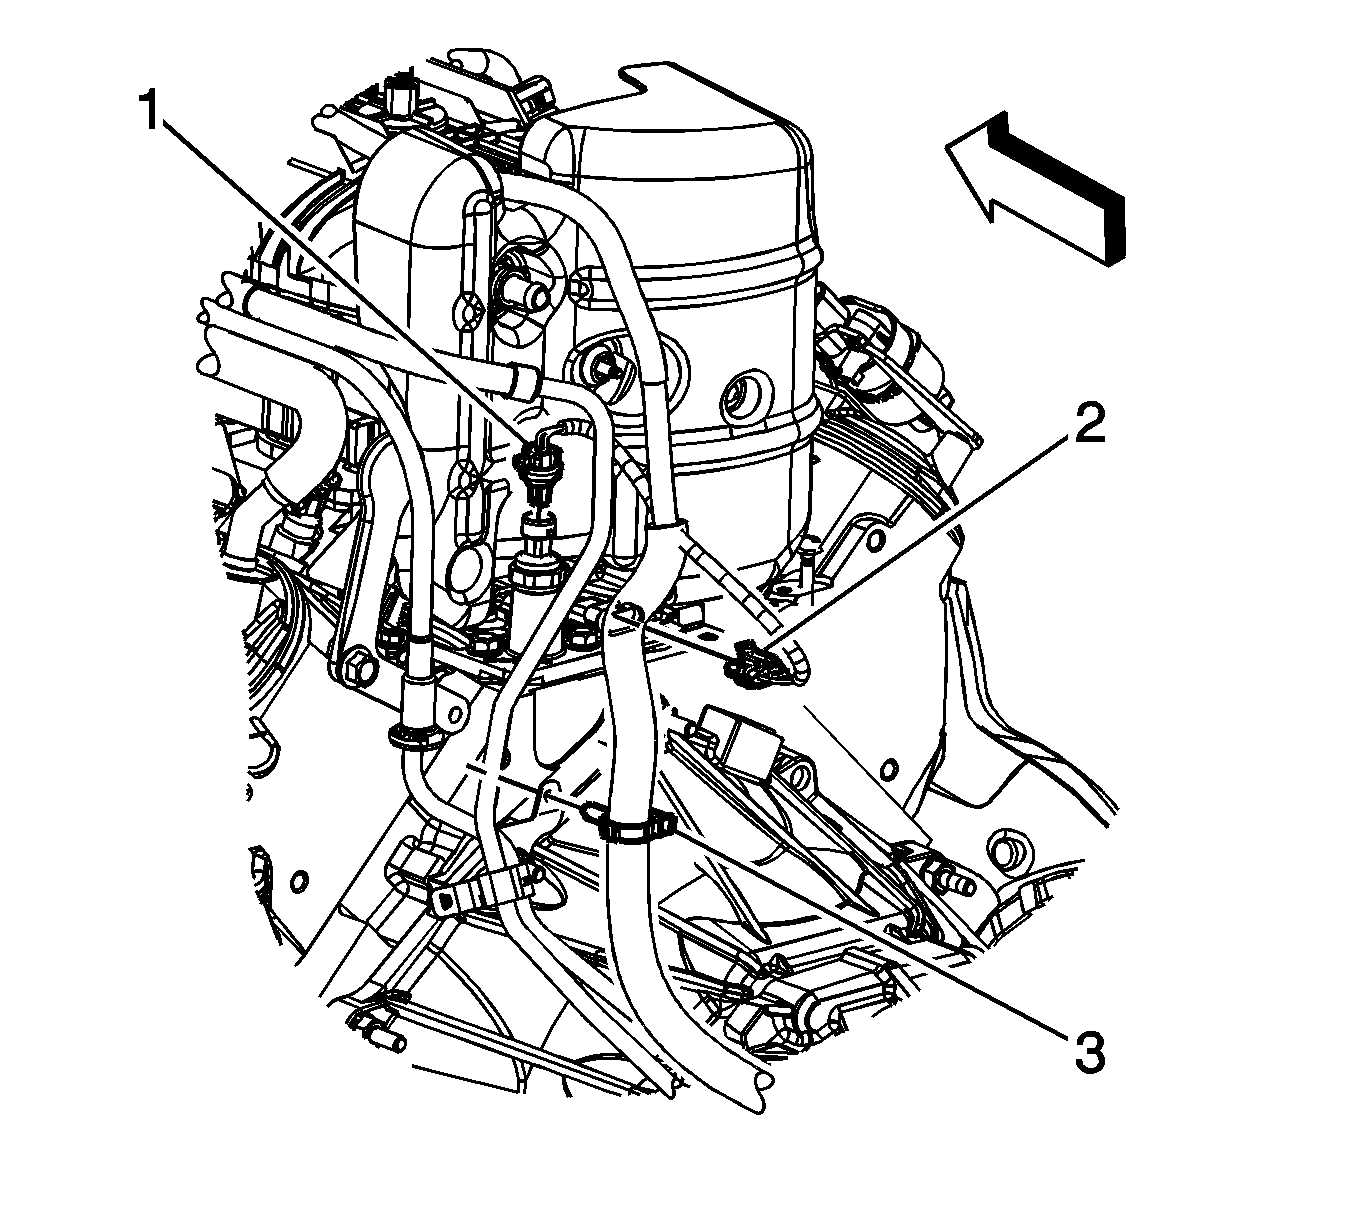 2007 Acura Tl Engine Schematic Wiring Diagrams Instructions Lexus Rx300 O2 Sensor Location Likewise Ford Escape Bank 2 1 2003 Gmc Envoy Part Diagram Gm 07 Chevy Tahoe